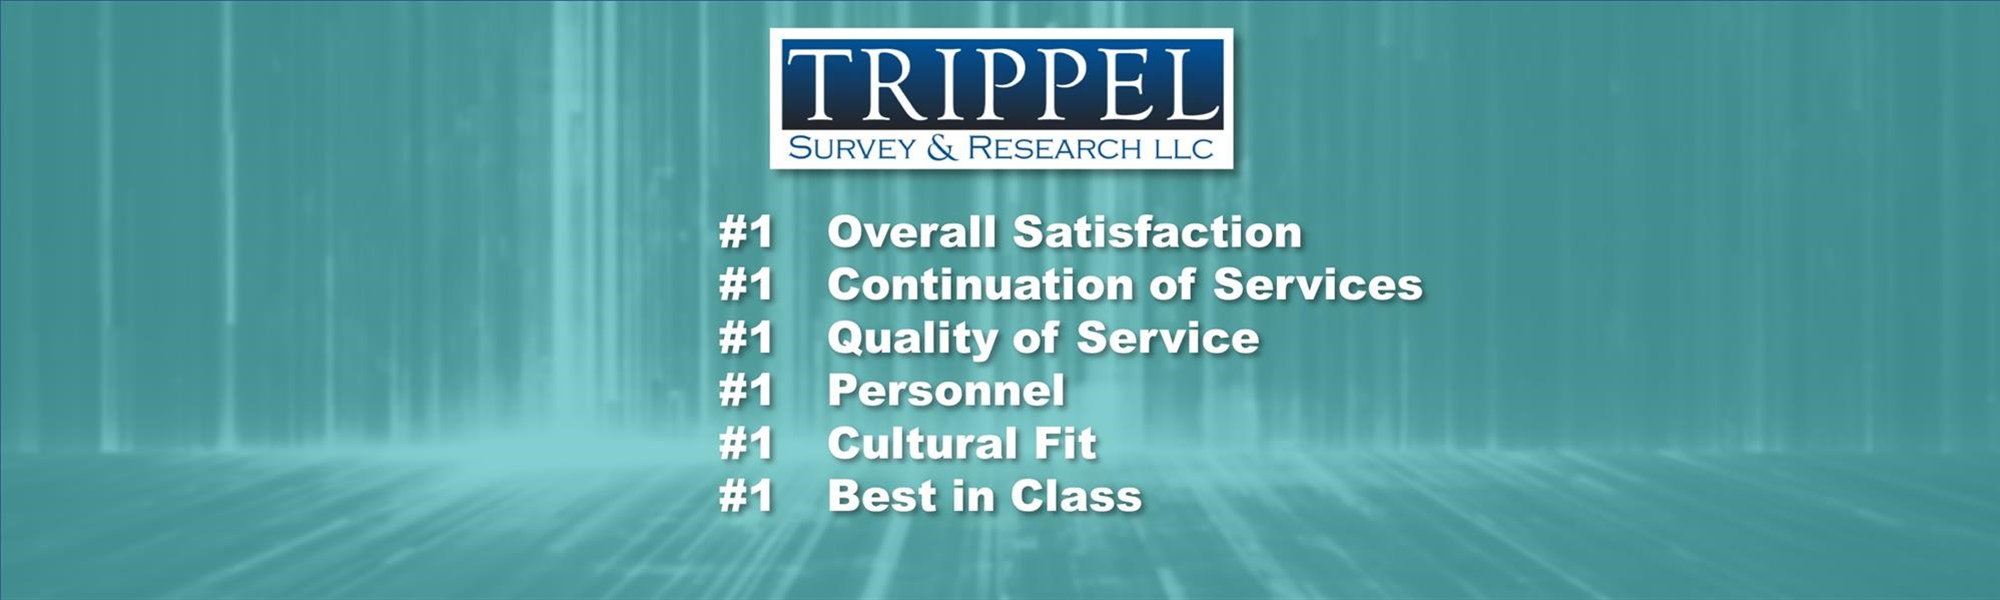 NEI #1 in Overall Satisfaction and Best in Class in Trippel Relocation Managers' Survey